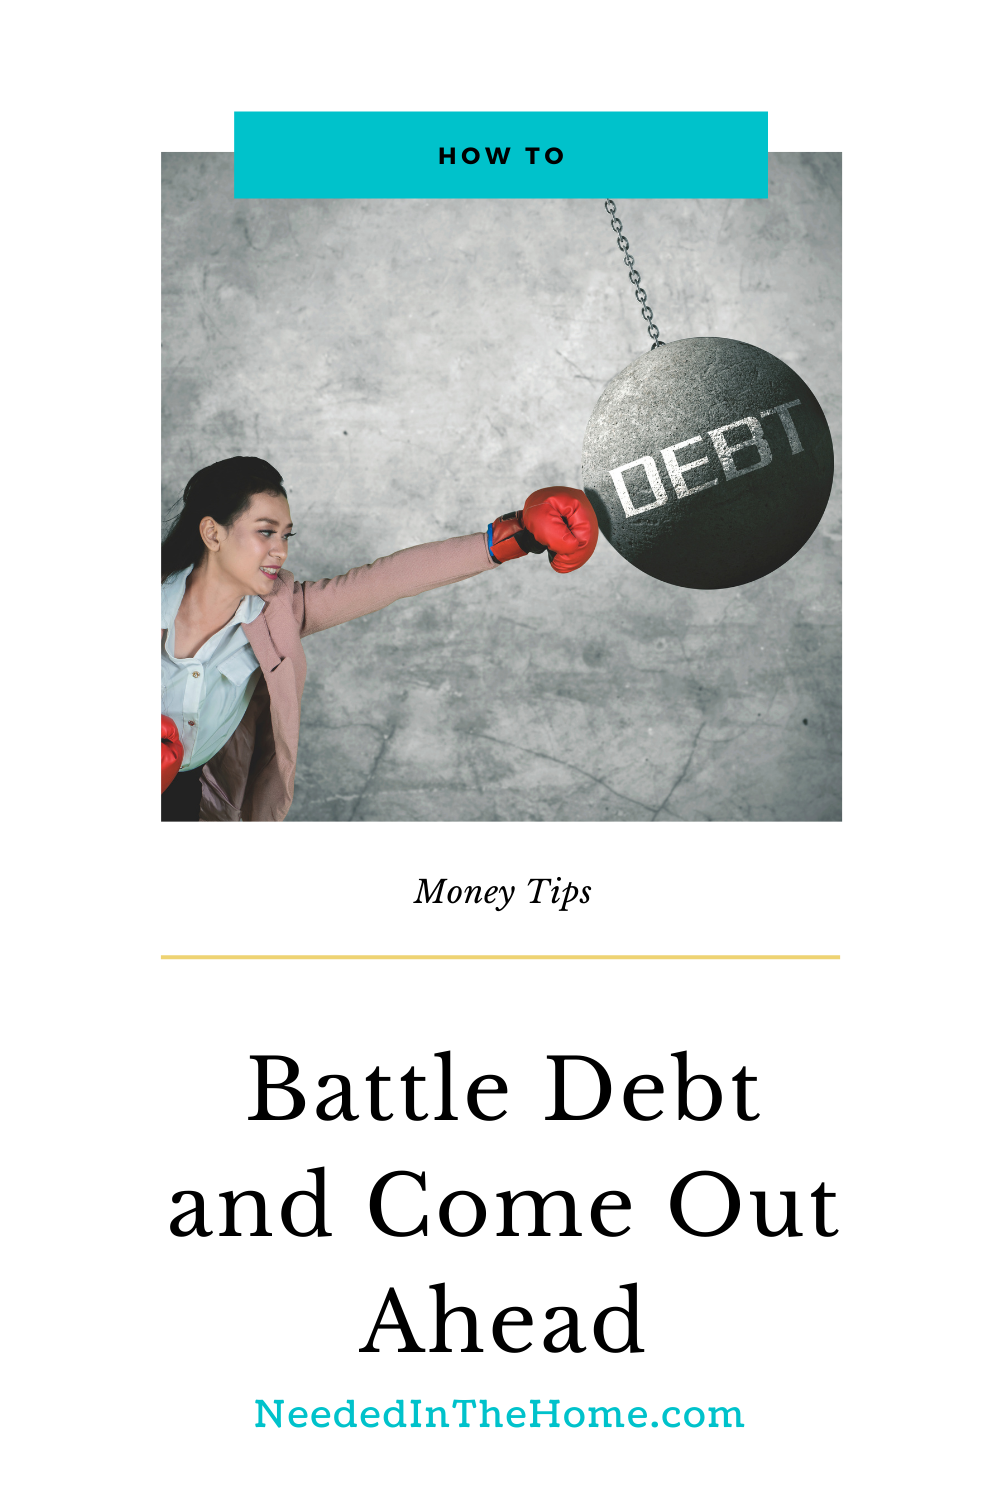 pinterest-pin-description how to money tips battle debt and come out ahead woman boxing ball of debt neededinthehome